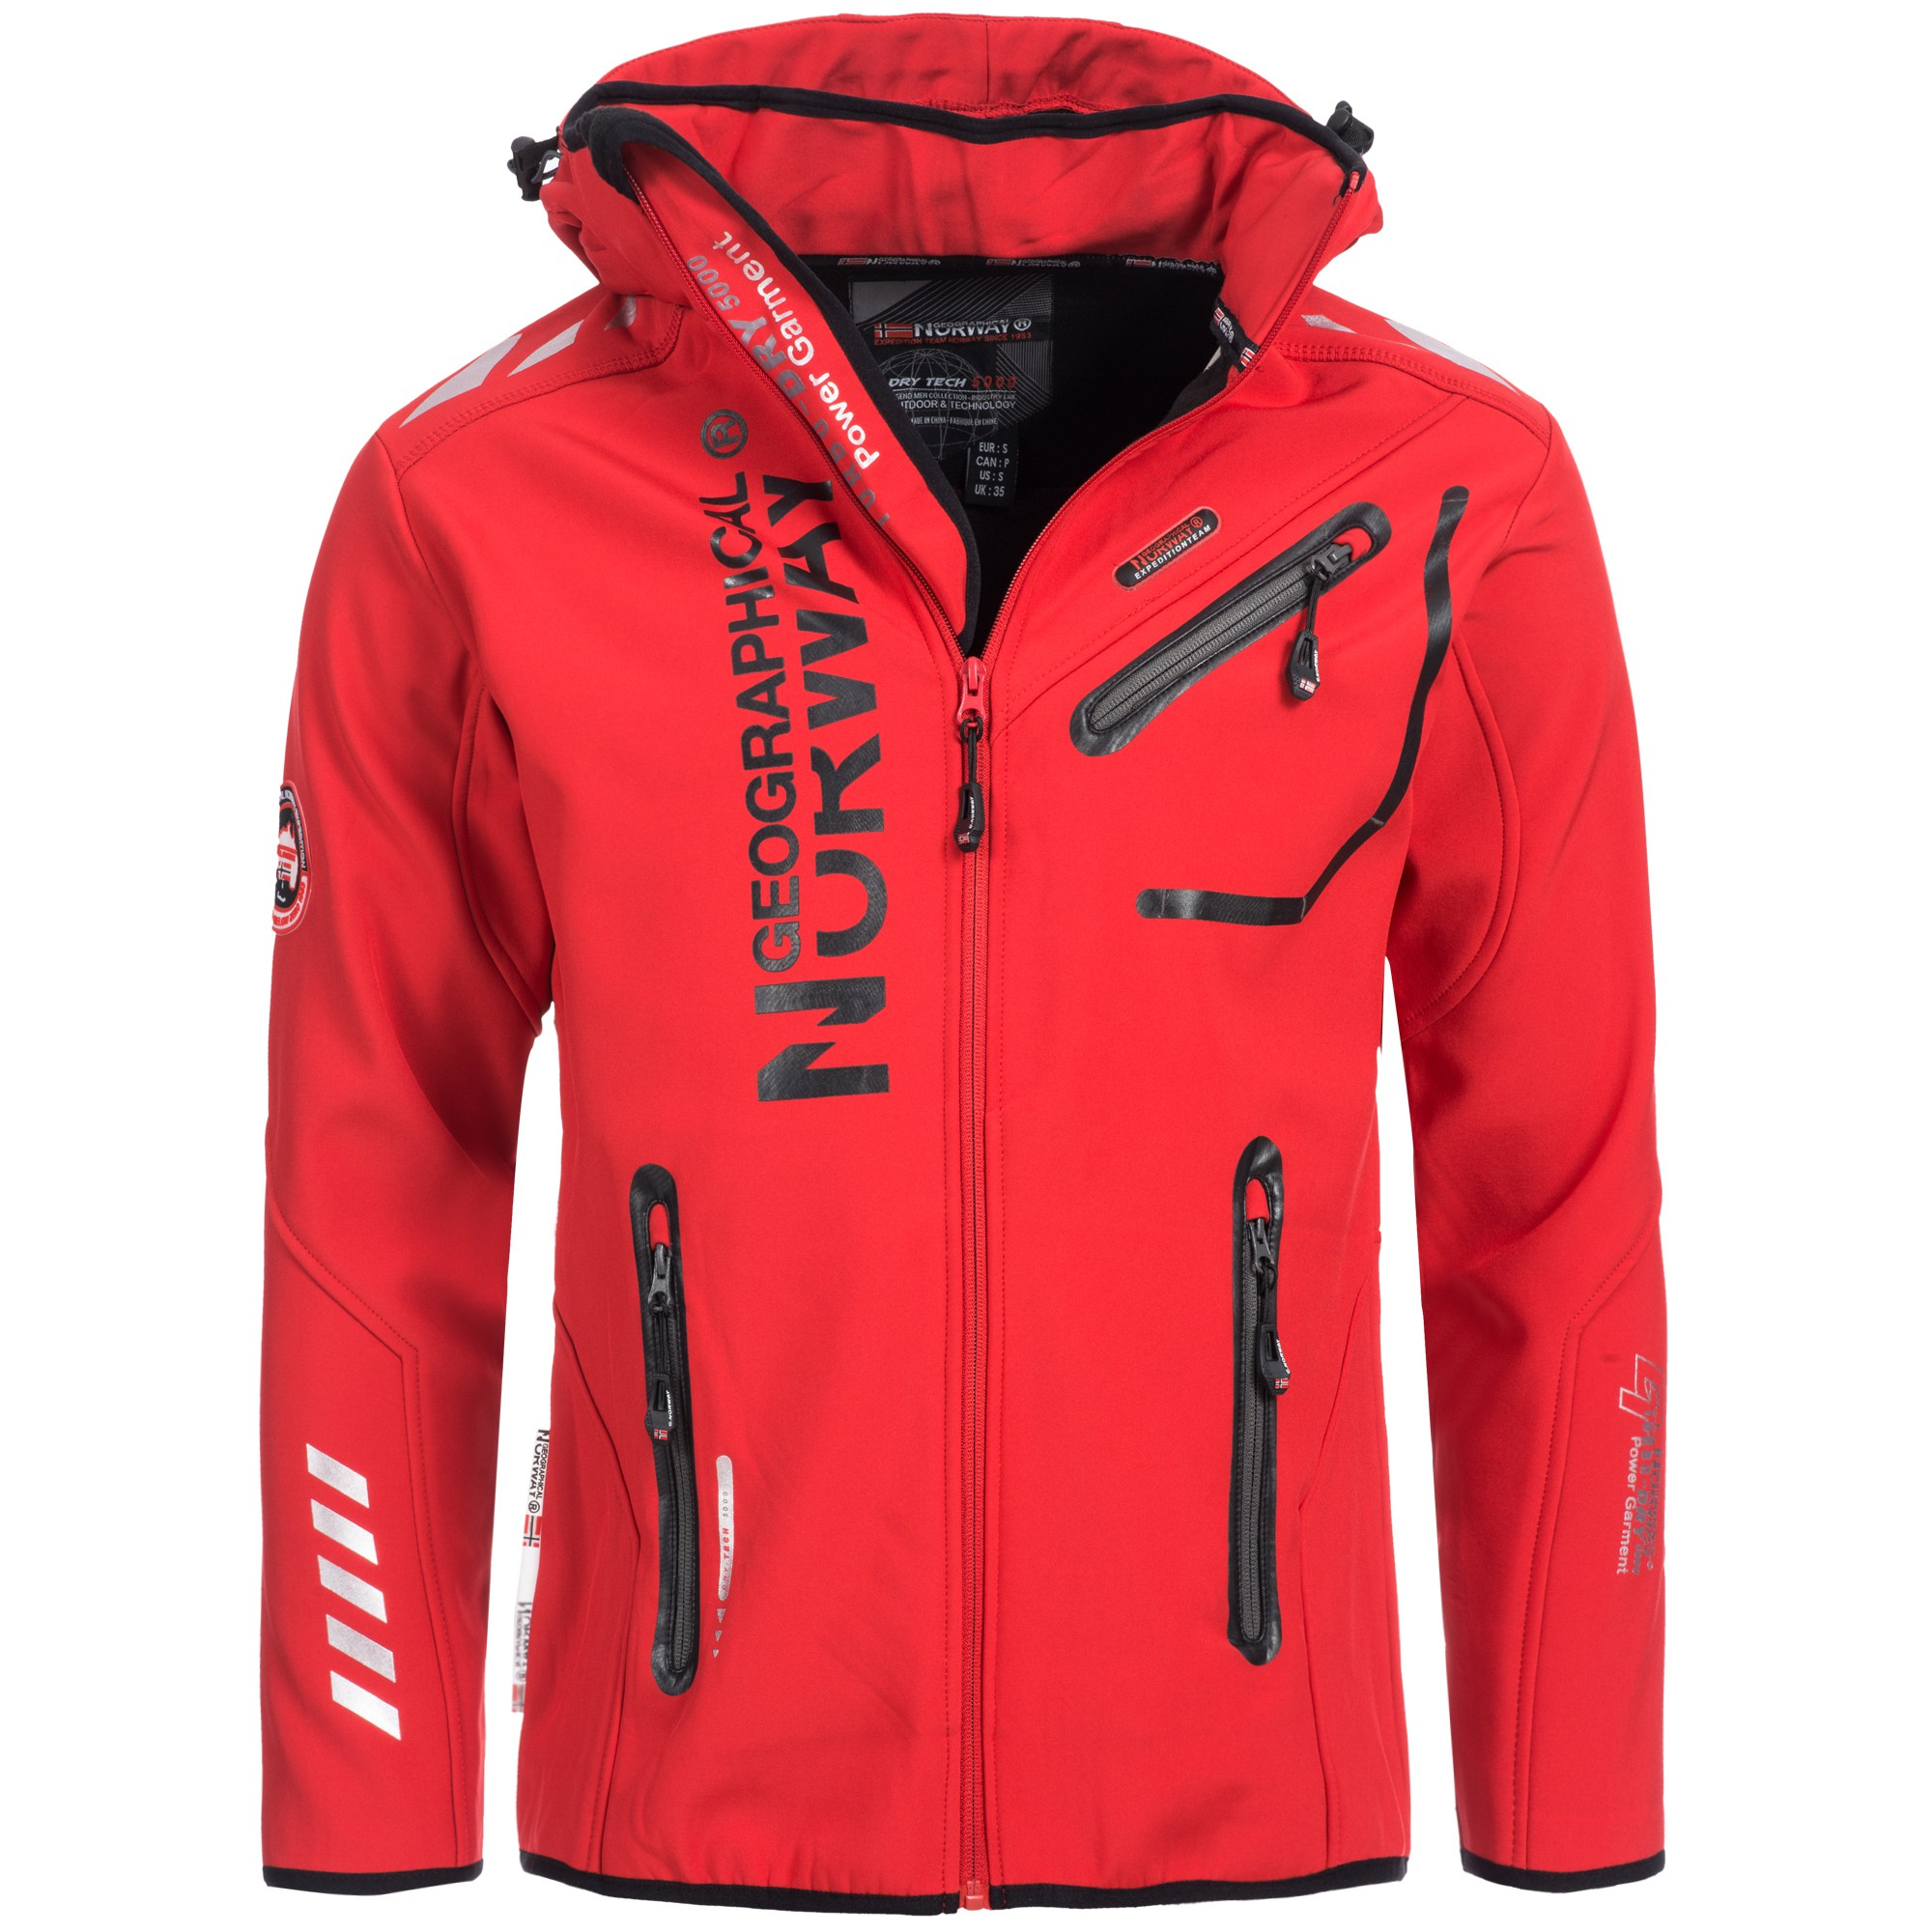 geographical norway rainman herren softshell jacke softshelljacke s xxl ebay. Black Bedroom Furniture Sets. Home Design Ideas